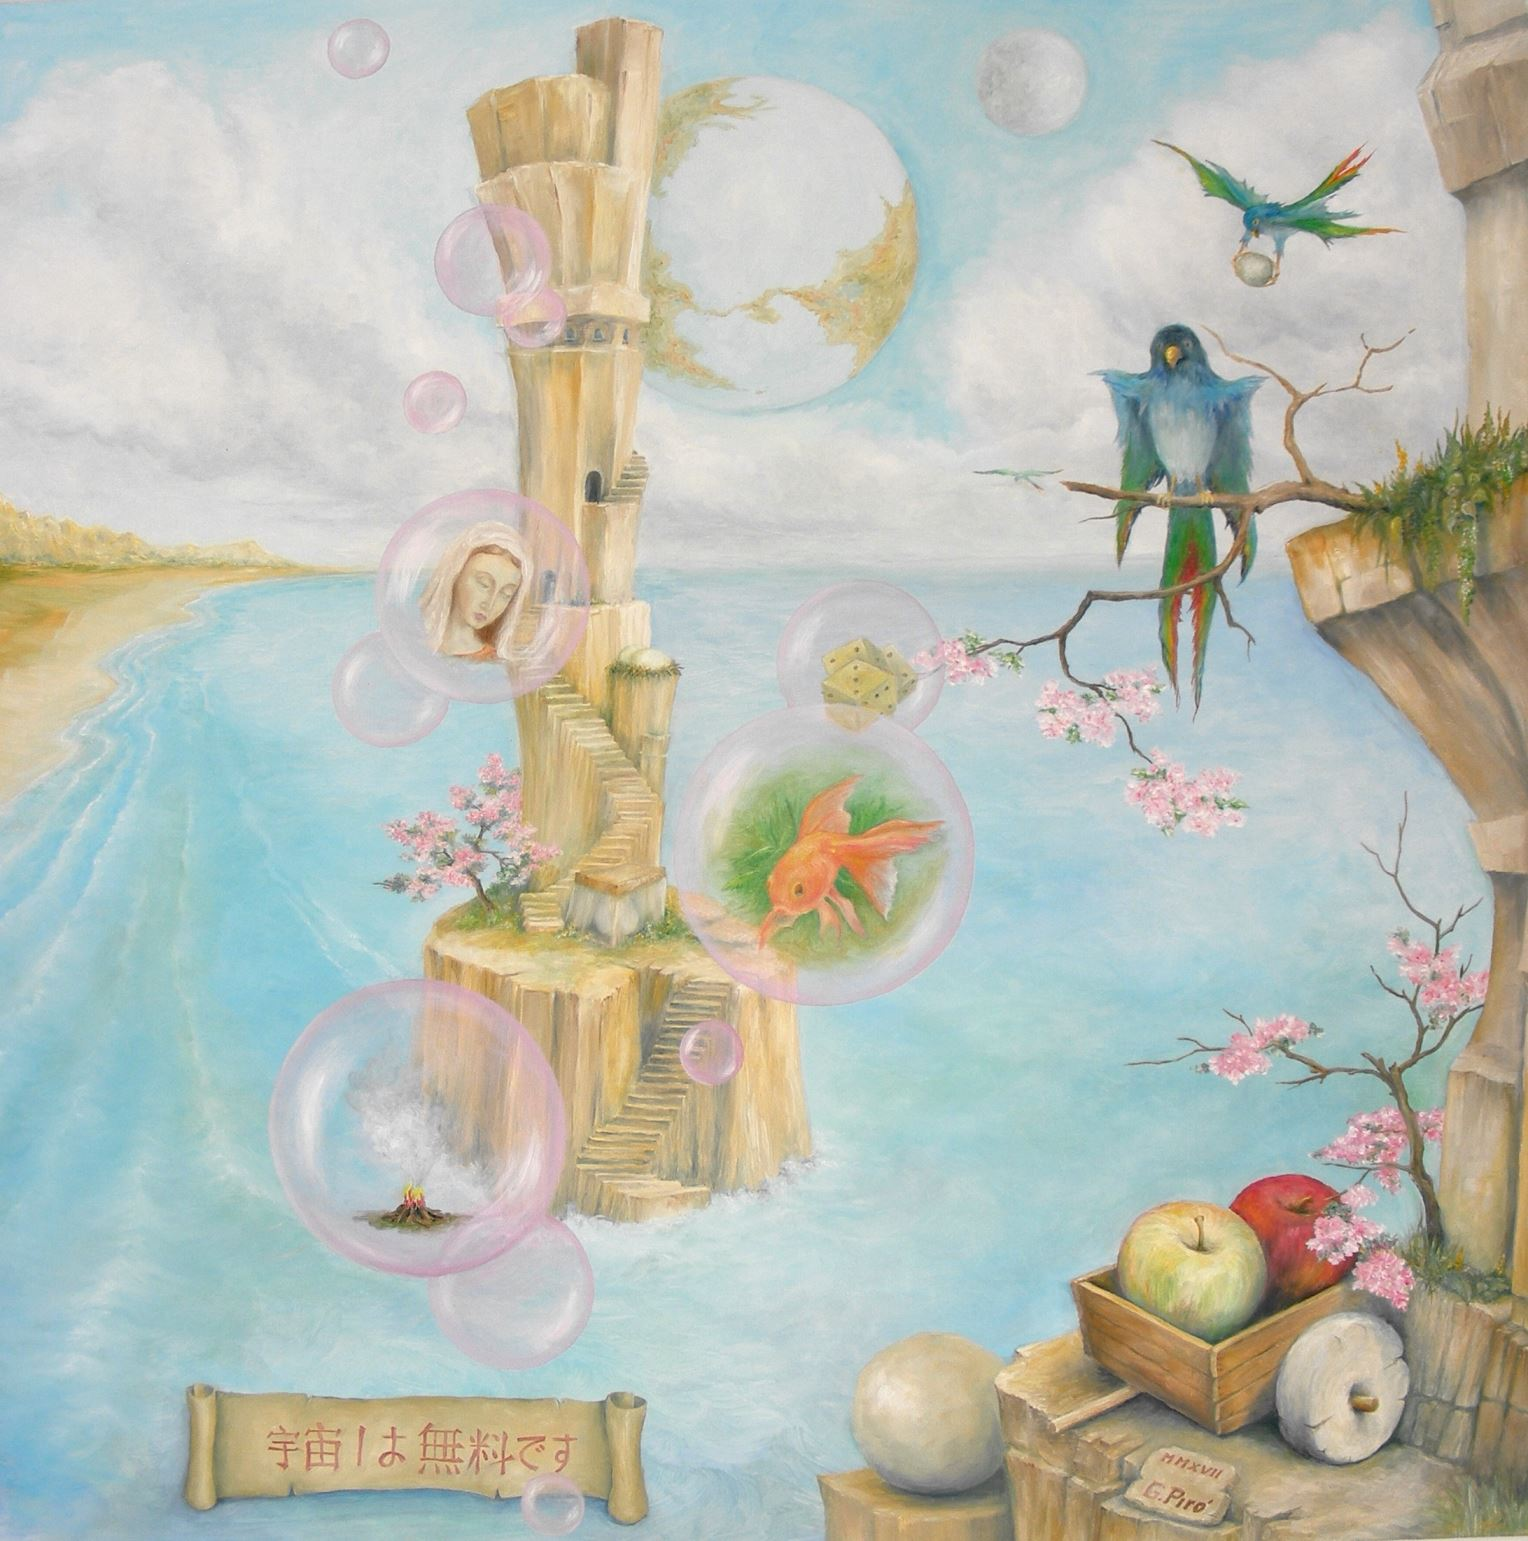 Painting, Gregory Pyra Piro, Universe is Free, Oil on Canvas, Surrealism